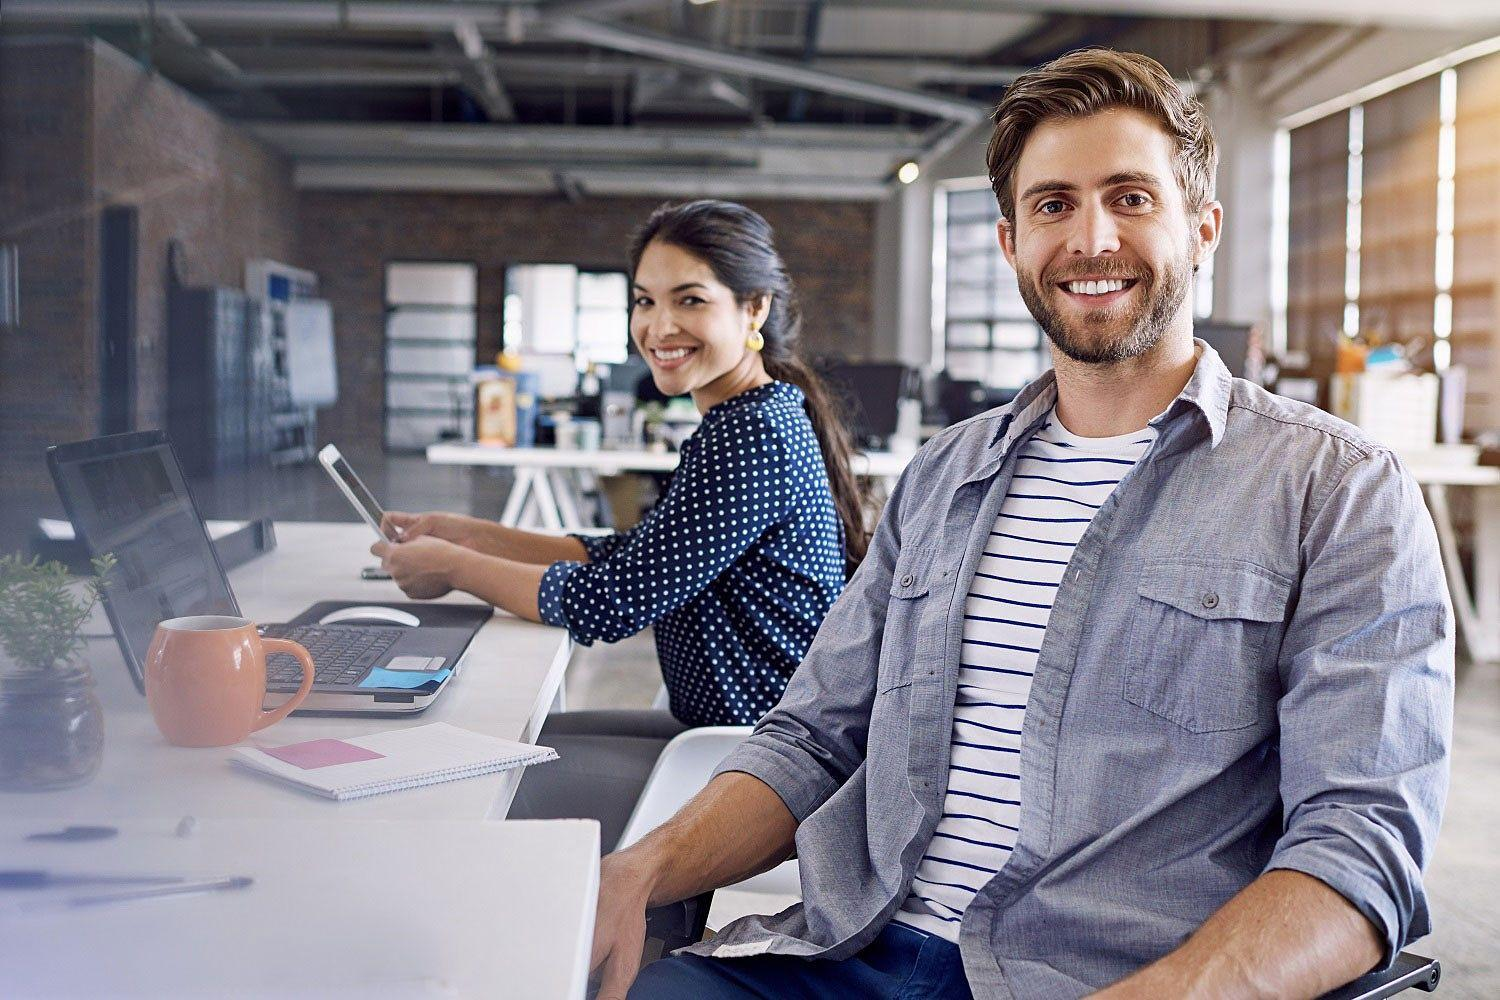 Young man and young woman in an office